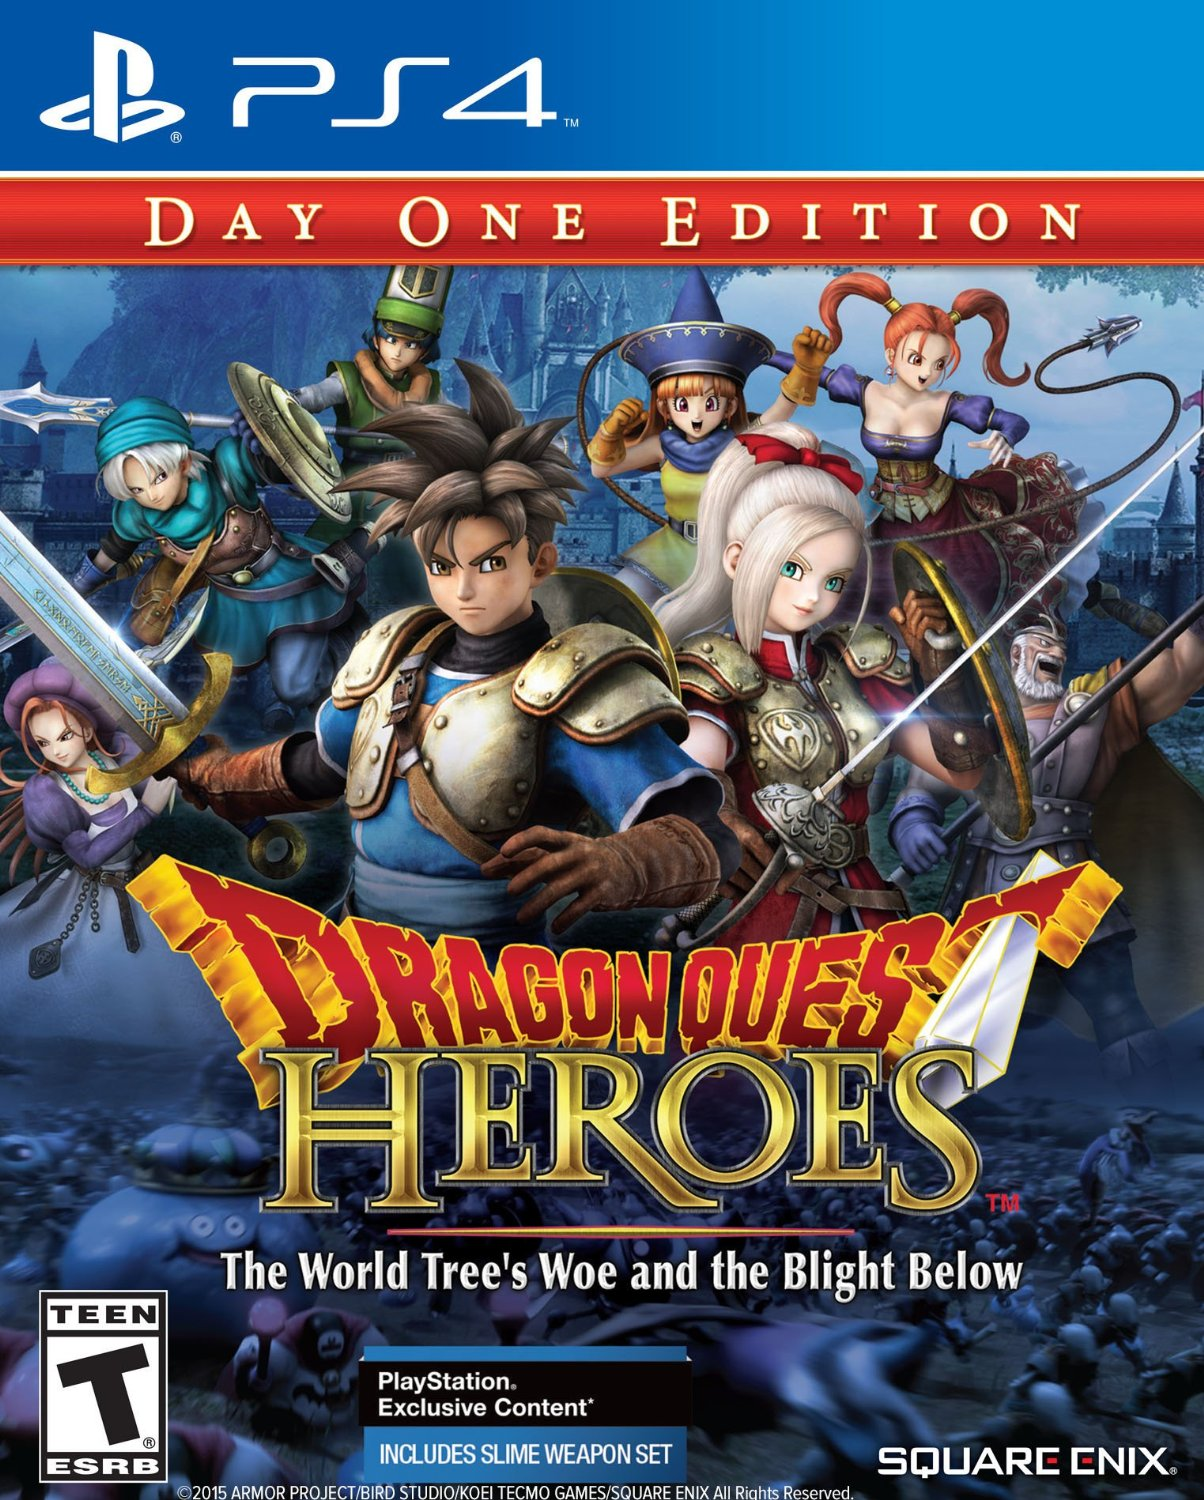 dragon-quest-heroes-the-world-trees-woe-and-the-blight-below-game-cover.jpg